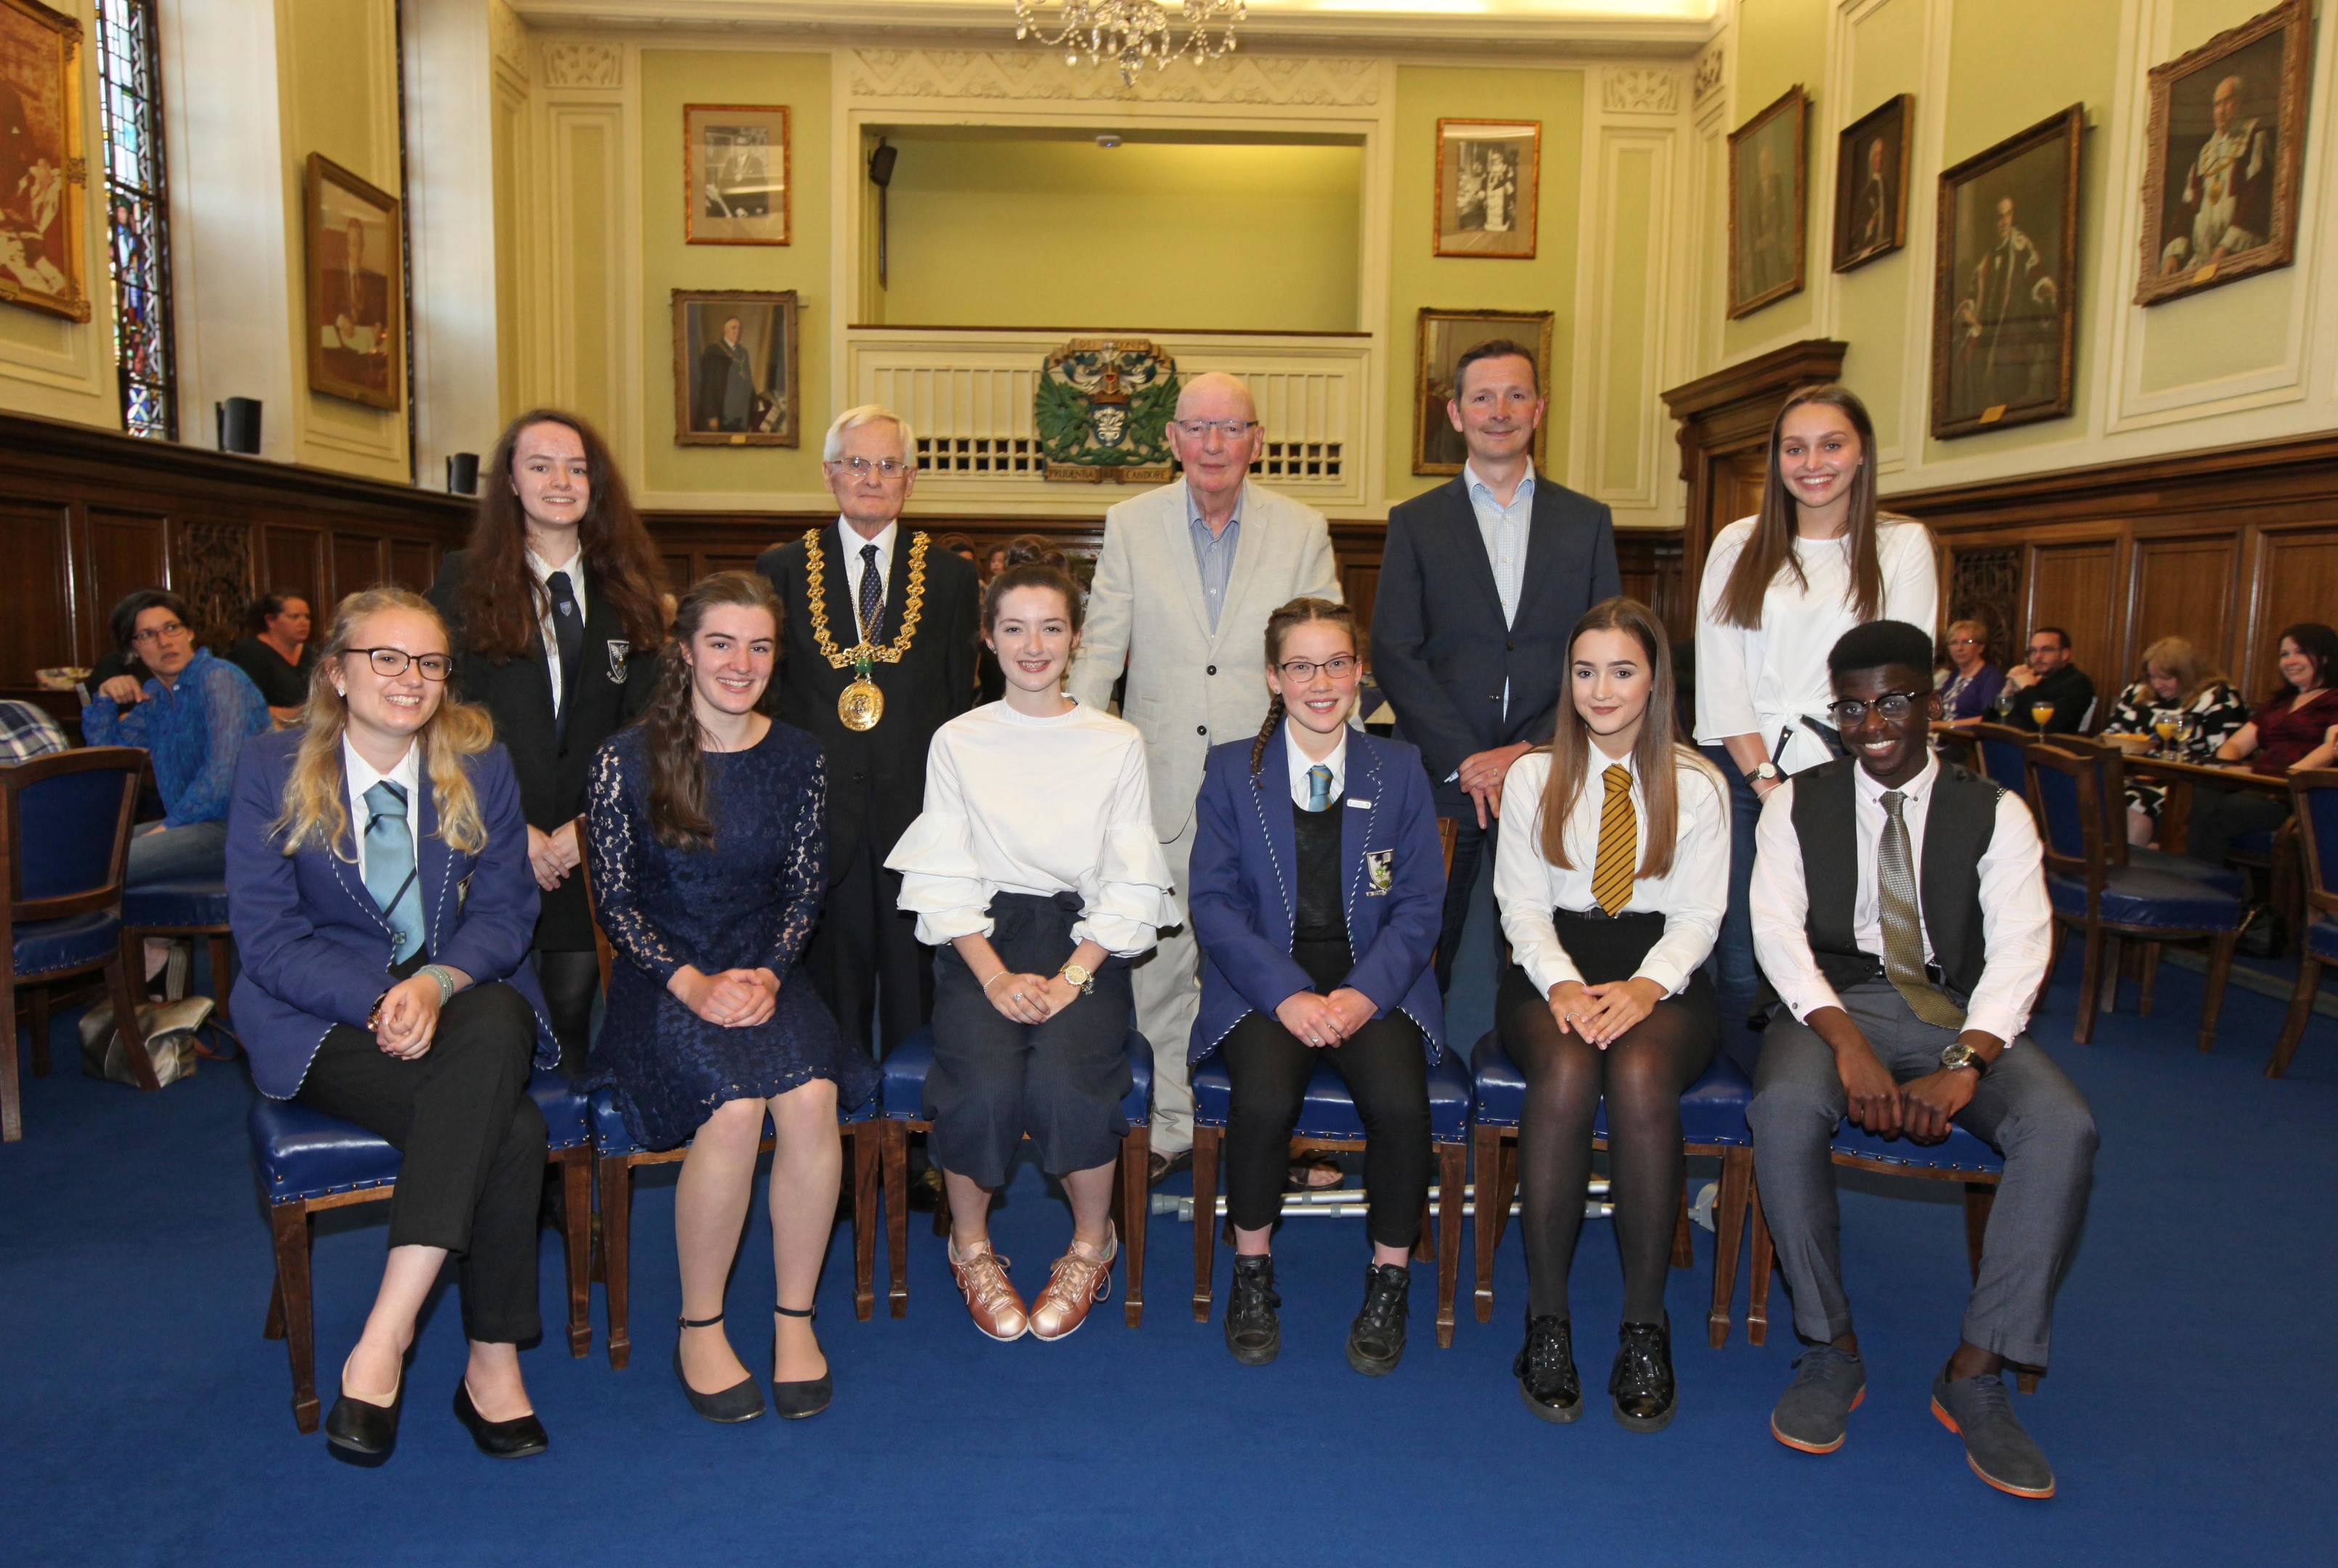 Prizewinners at Tuesday night's ceremony.